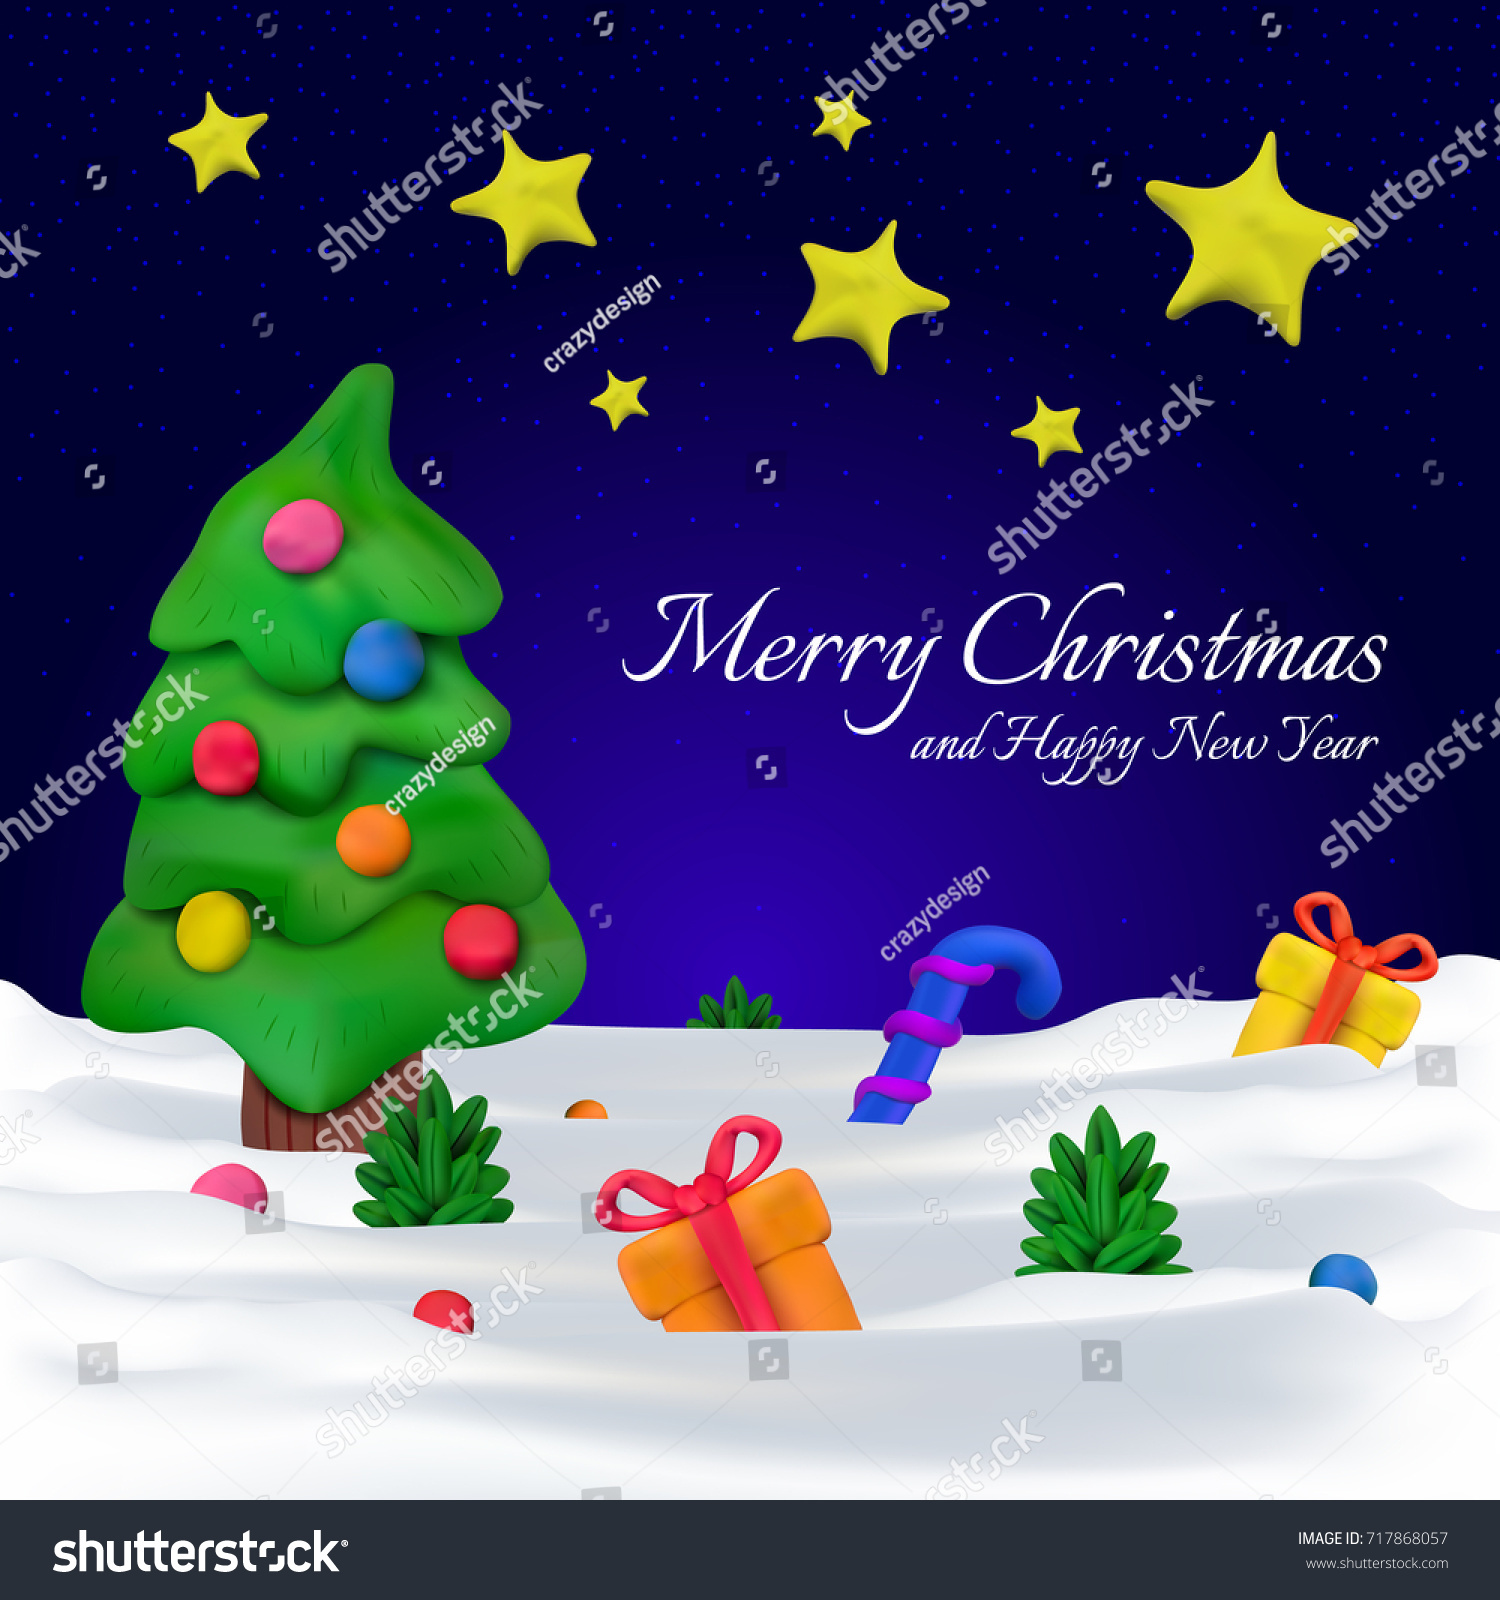 handmade vector plasticine greeting card or banner for christmas and happy new year vector illustration